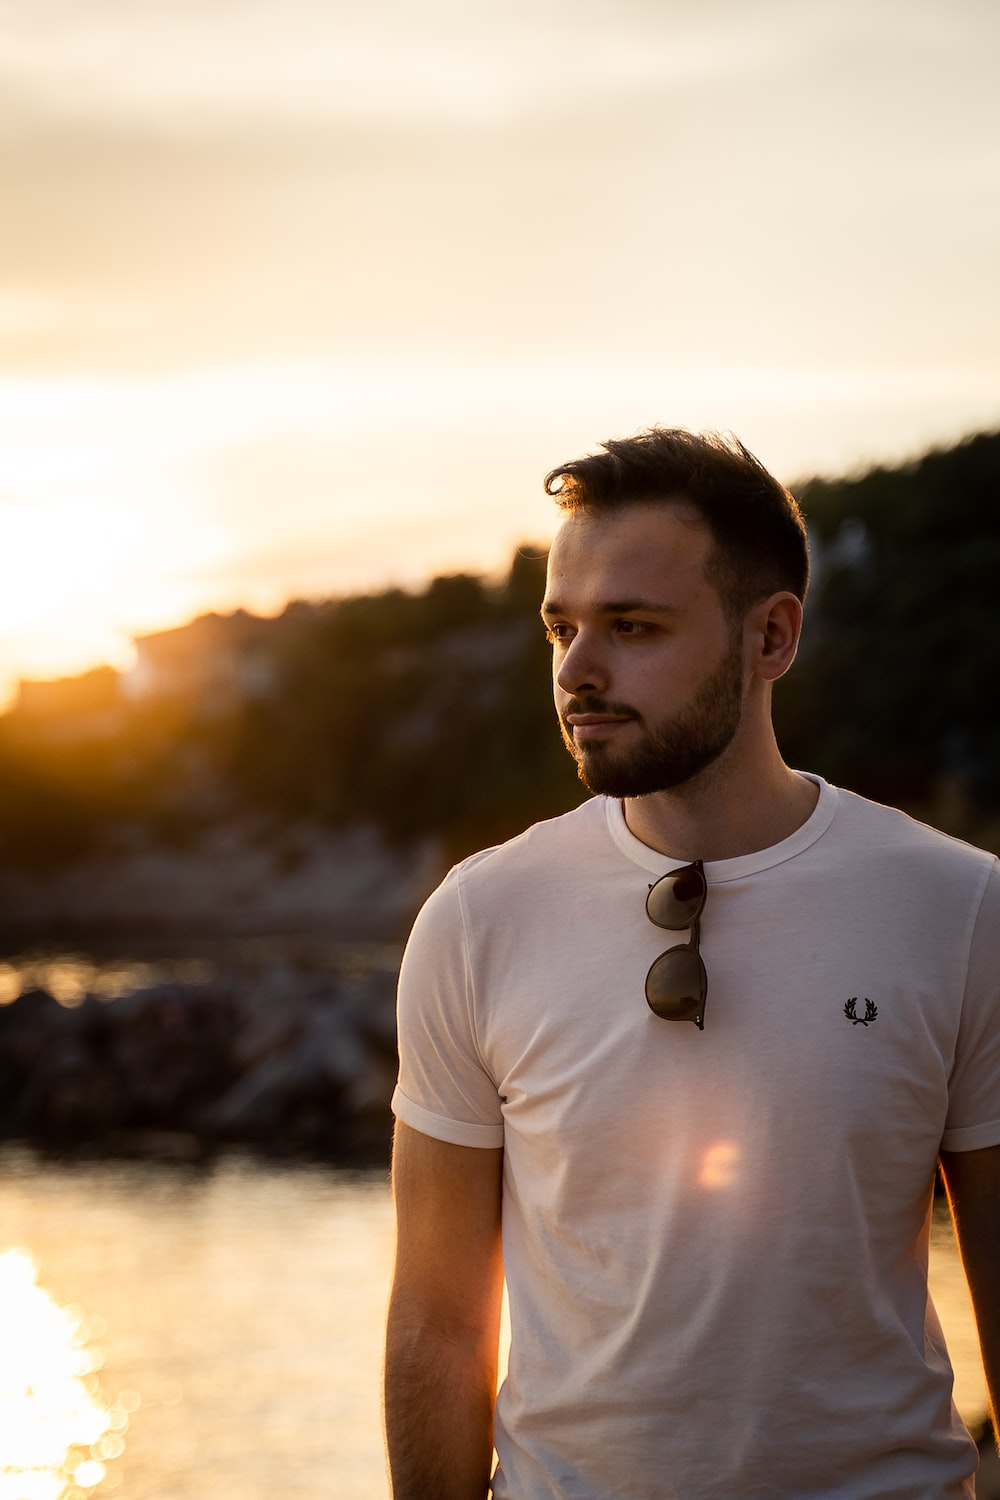 man in white crew neck t-shirt standing near body of water during daytime